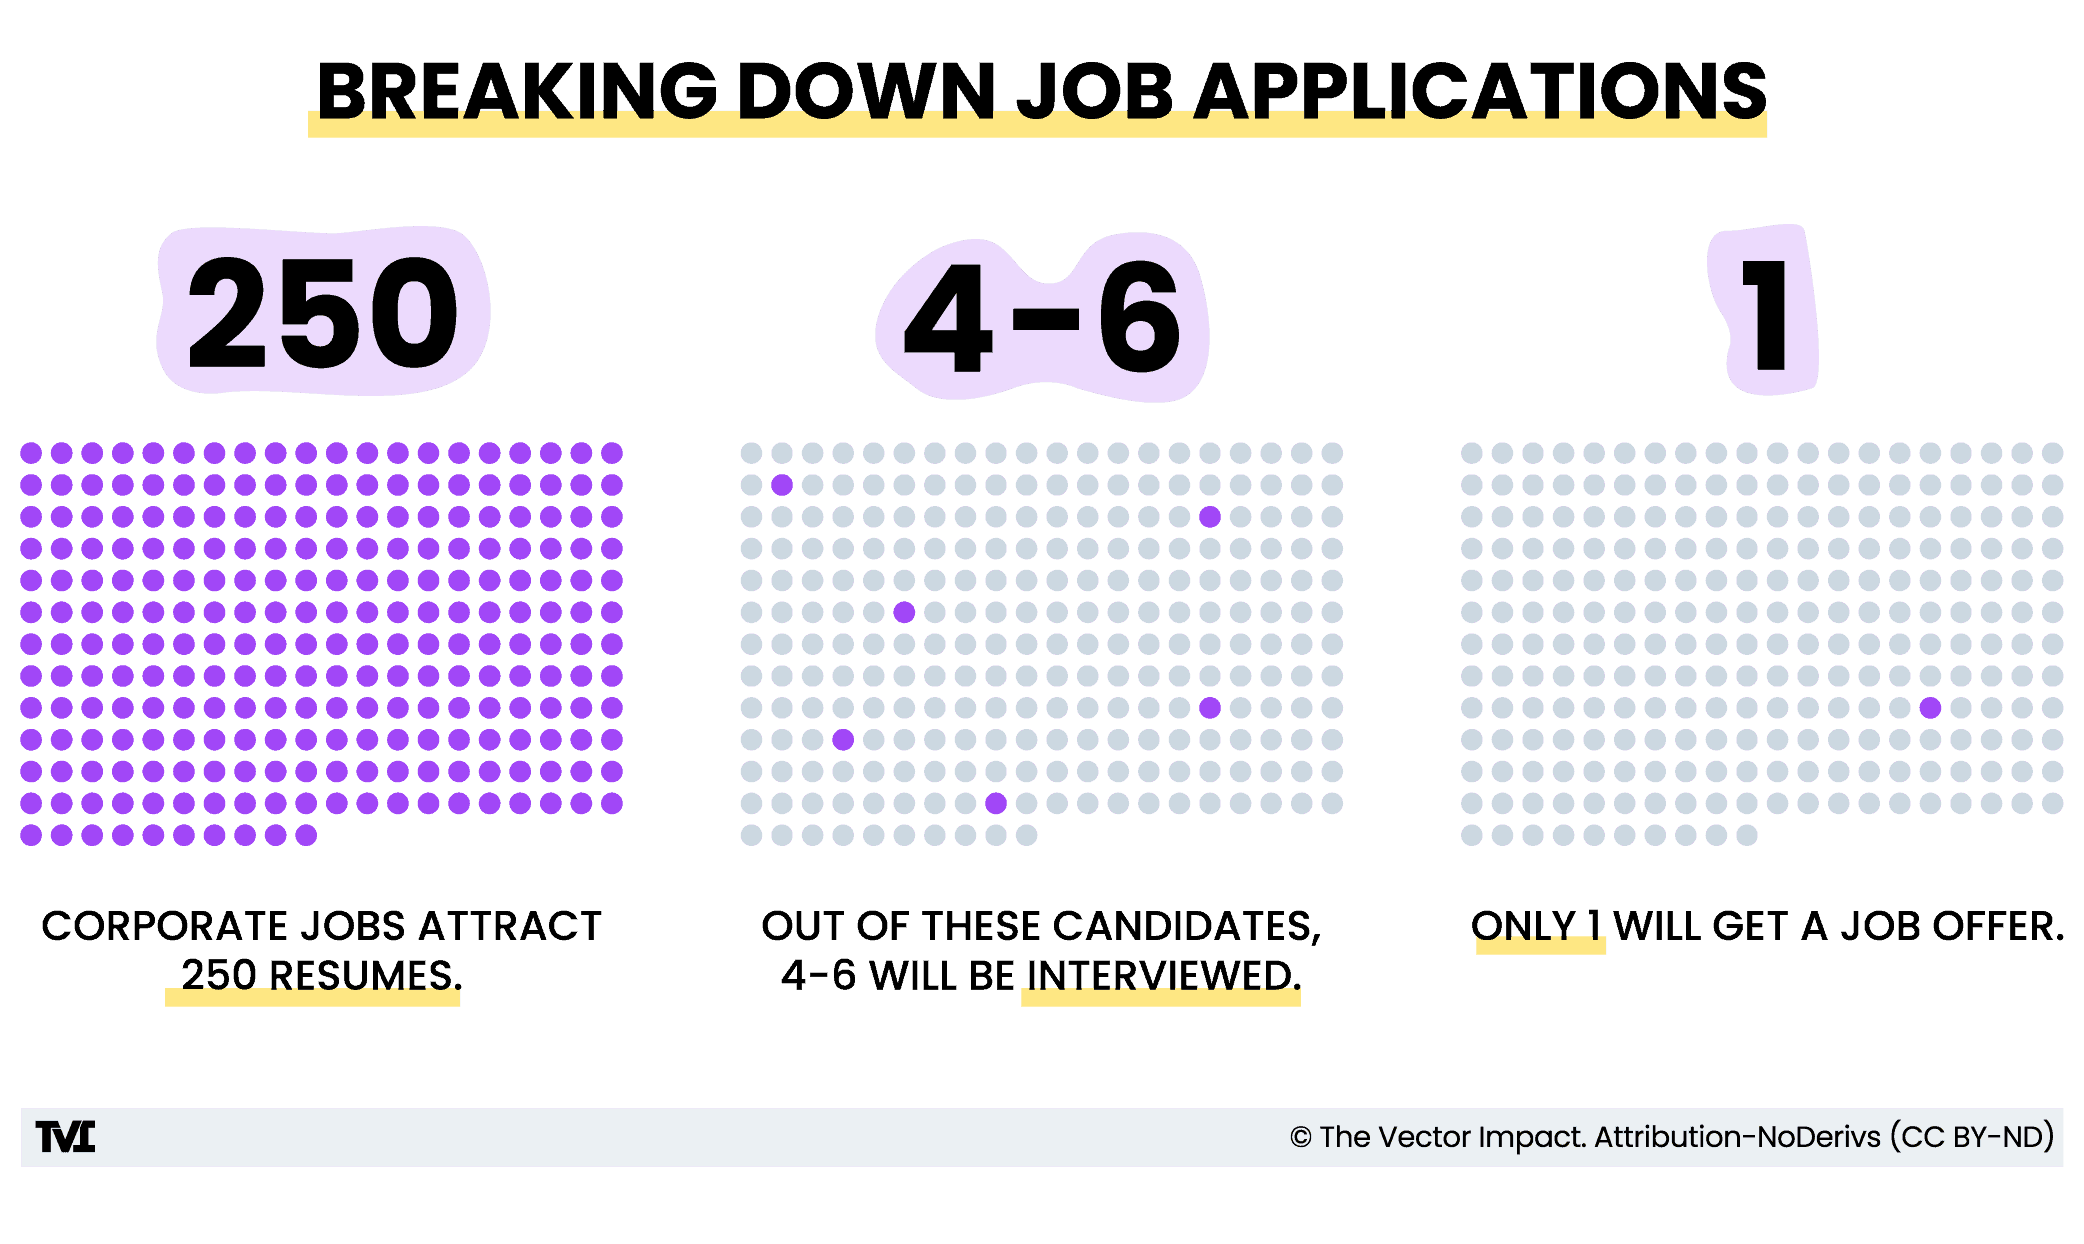 Breaking down job applications infographic. Out of 250 applications, 4-6 will be interviewed, and only 1 will receive an offer.